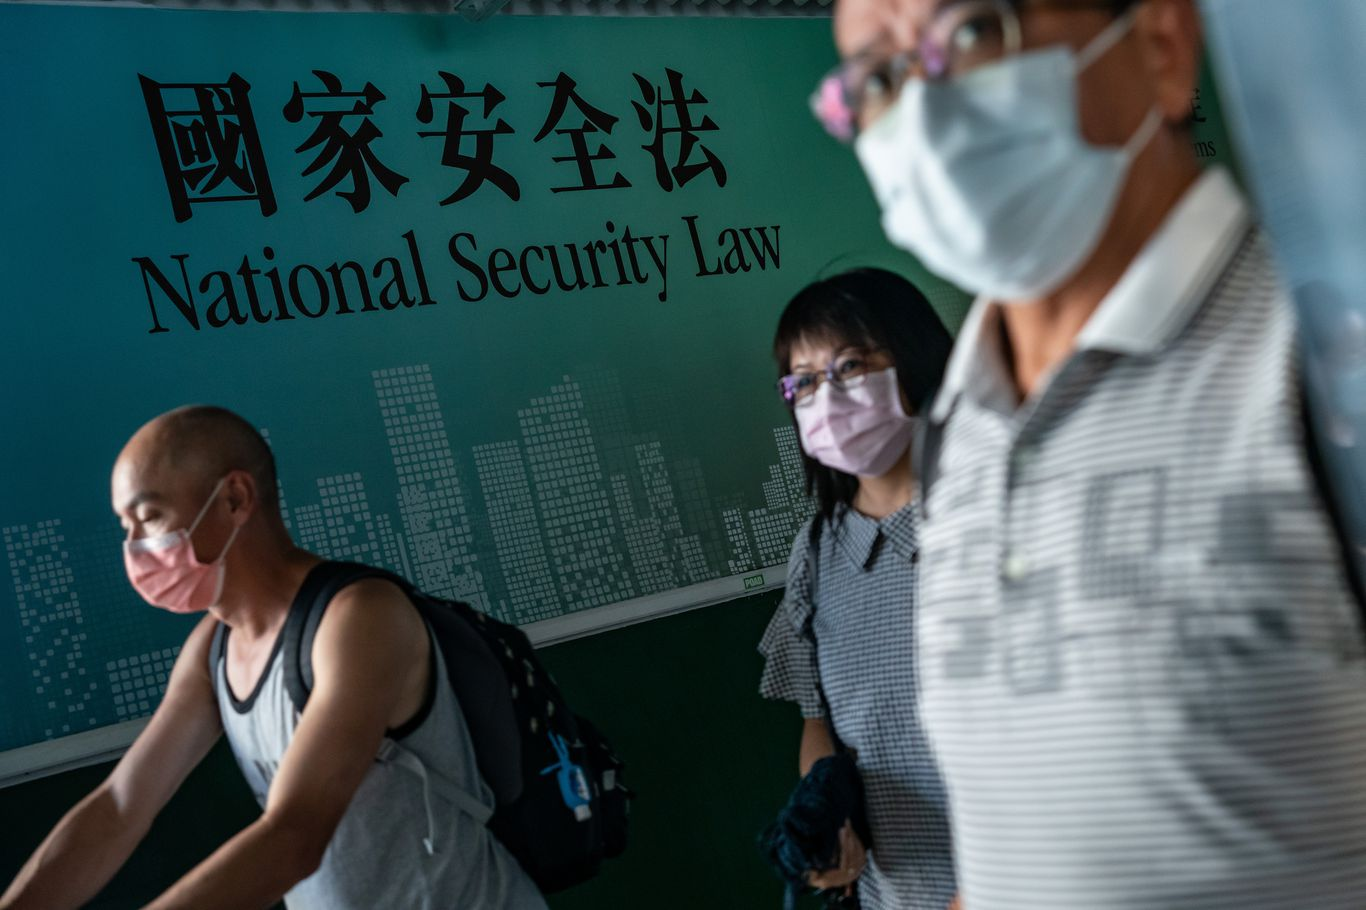 New Hong Kong national security law sets harsh penalties for broadly defined political crimes thumbnail